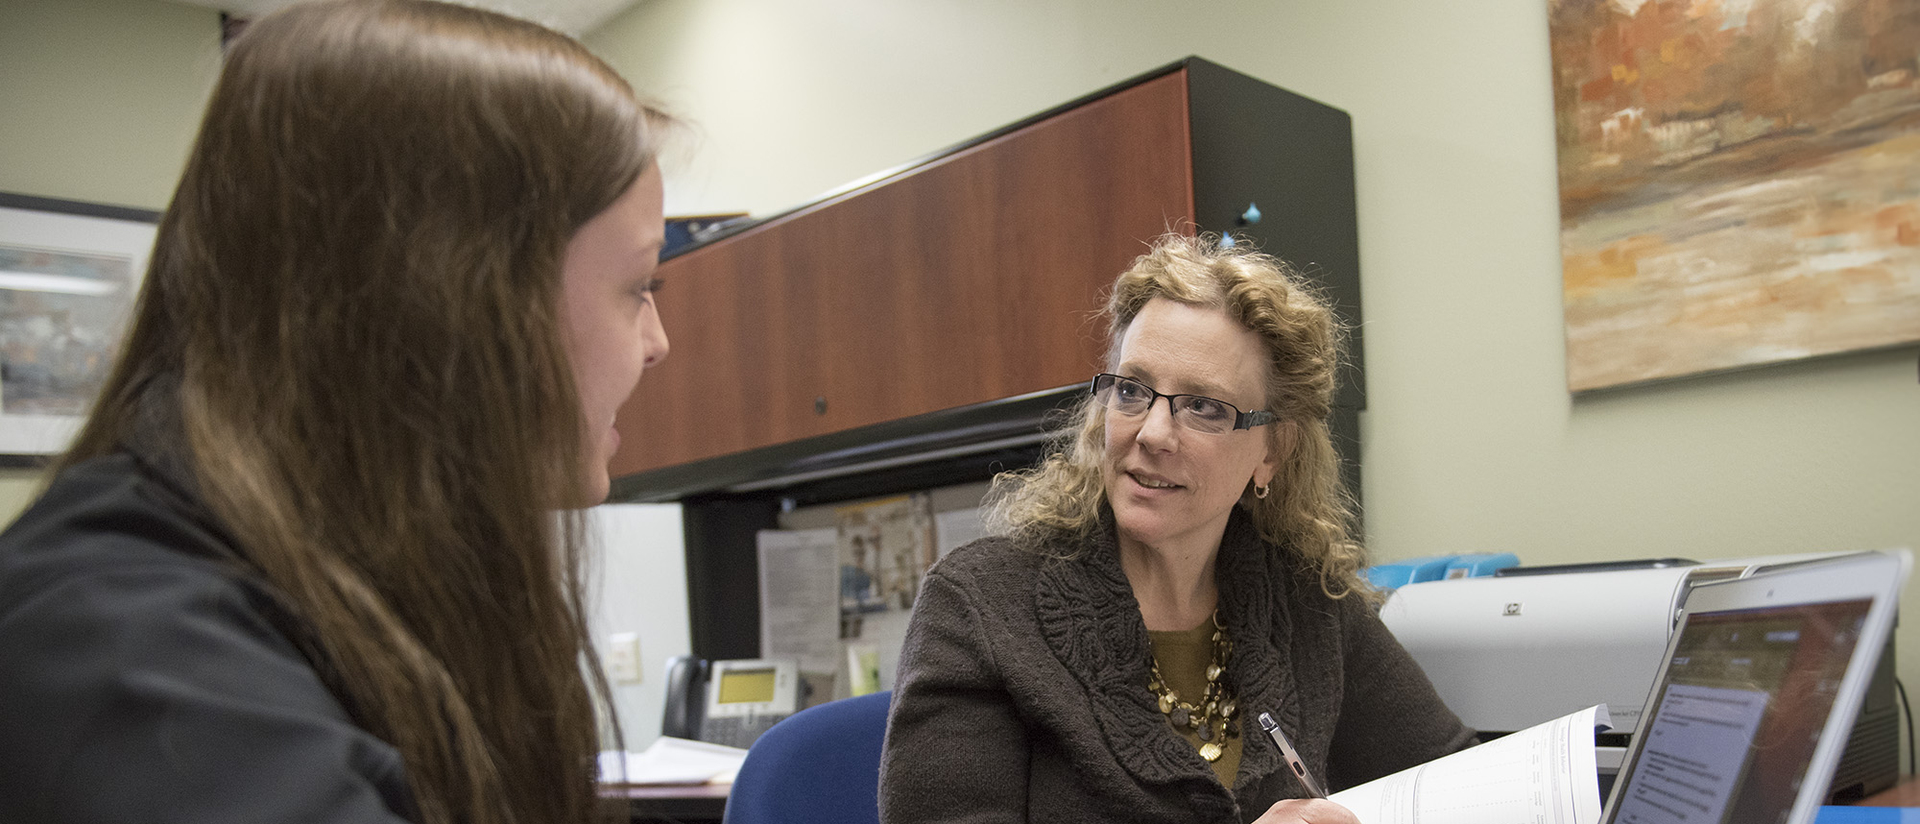 Faculty member talking with student.